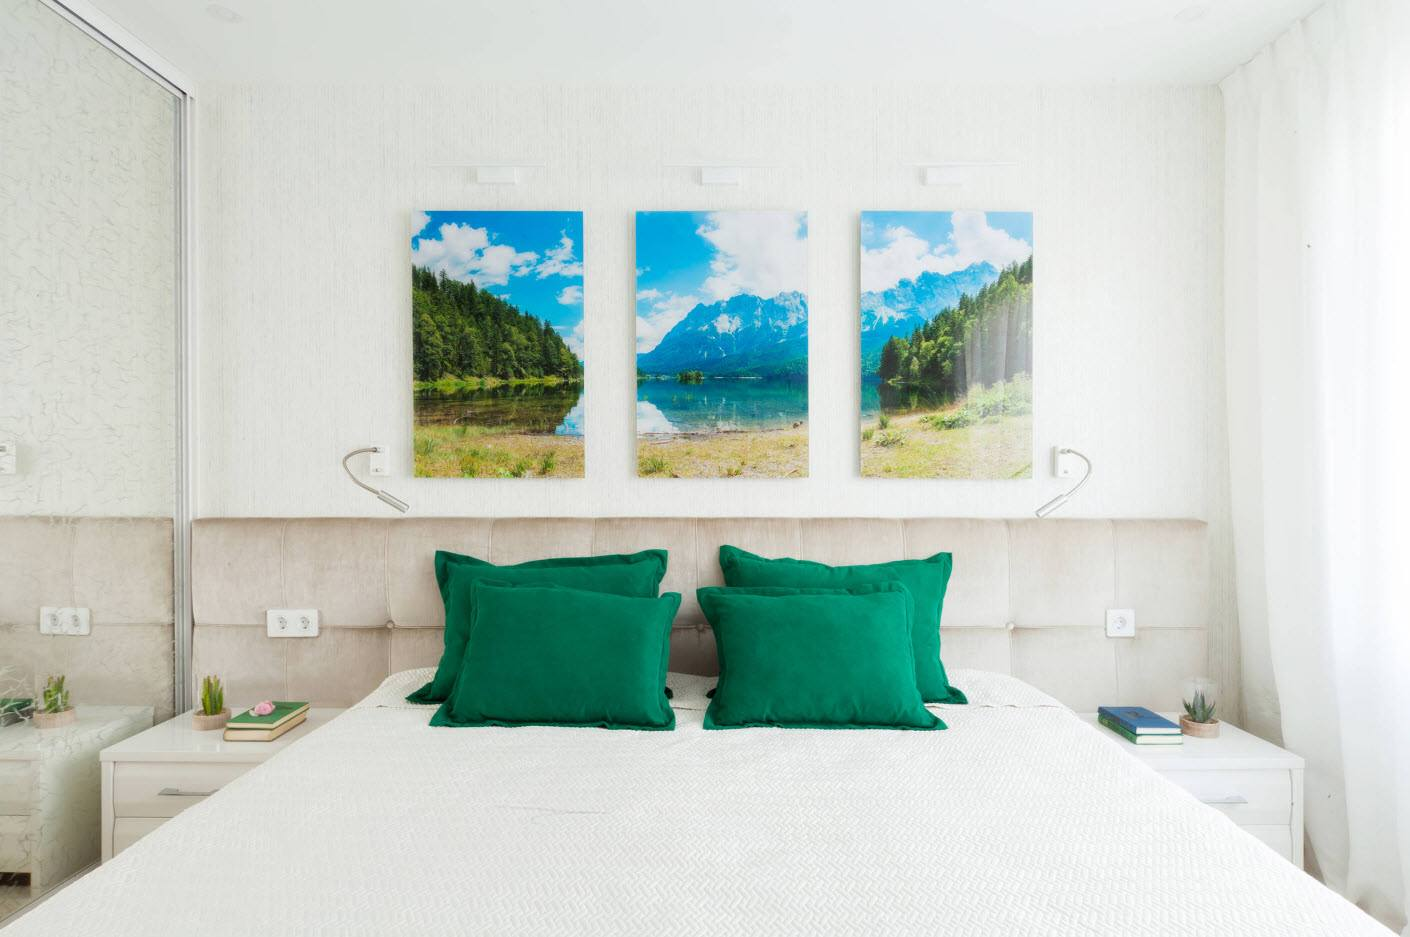 120 Square Feet Bedroom Interior Decoration Ideas. White colored room with three pictures over the headboard